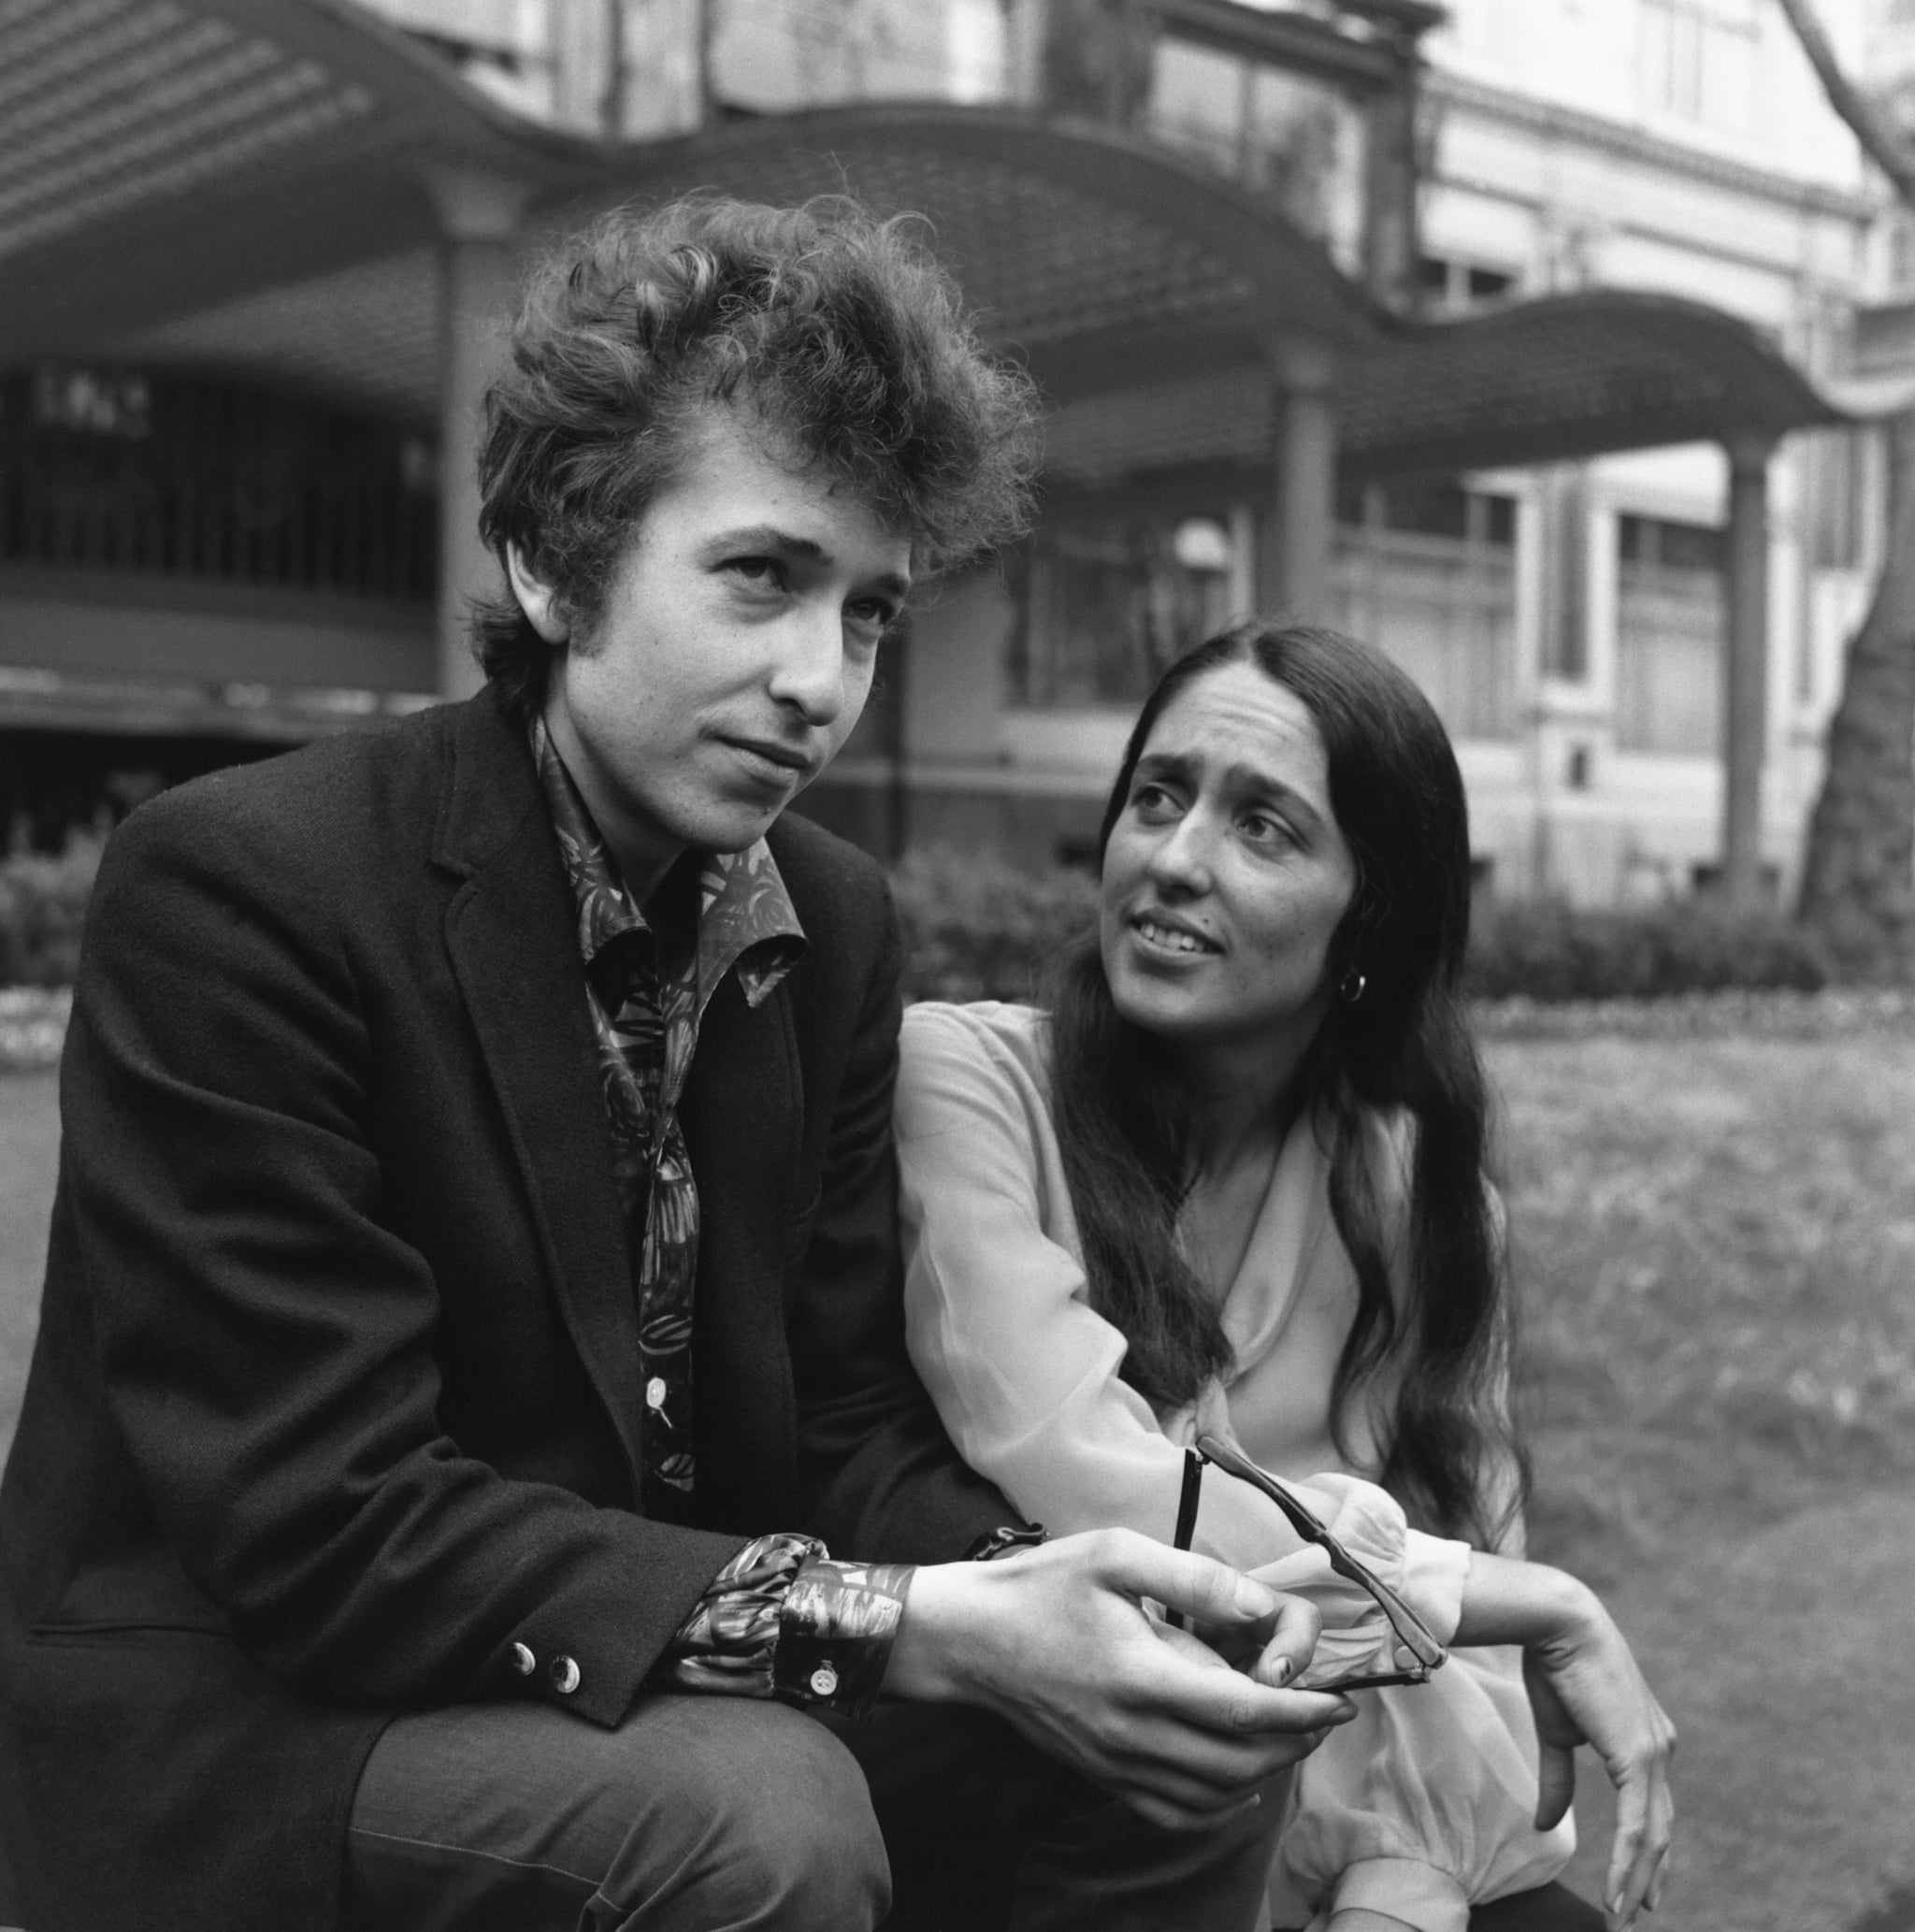 Bob Dylan and Joan Baez | The Most Stylish Music Couples of All Time